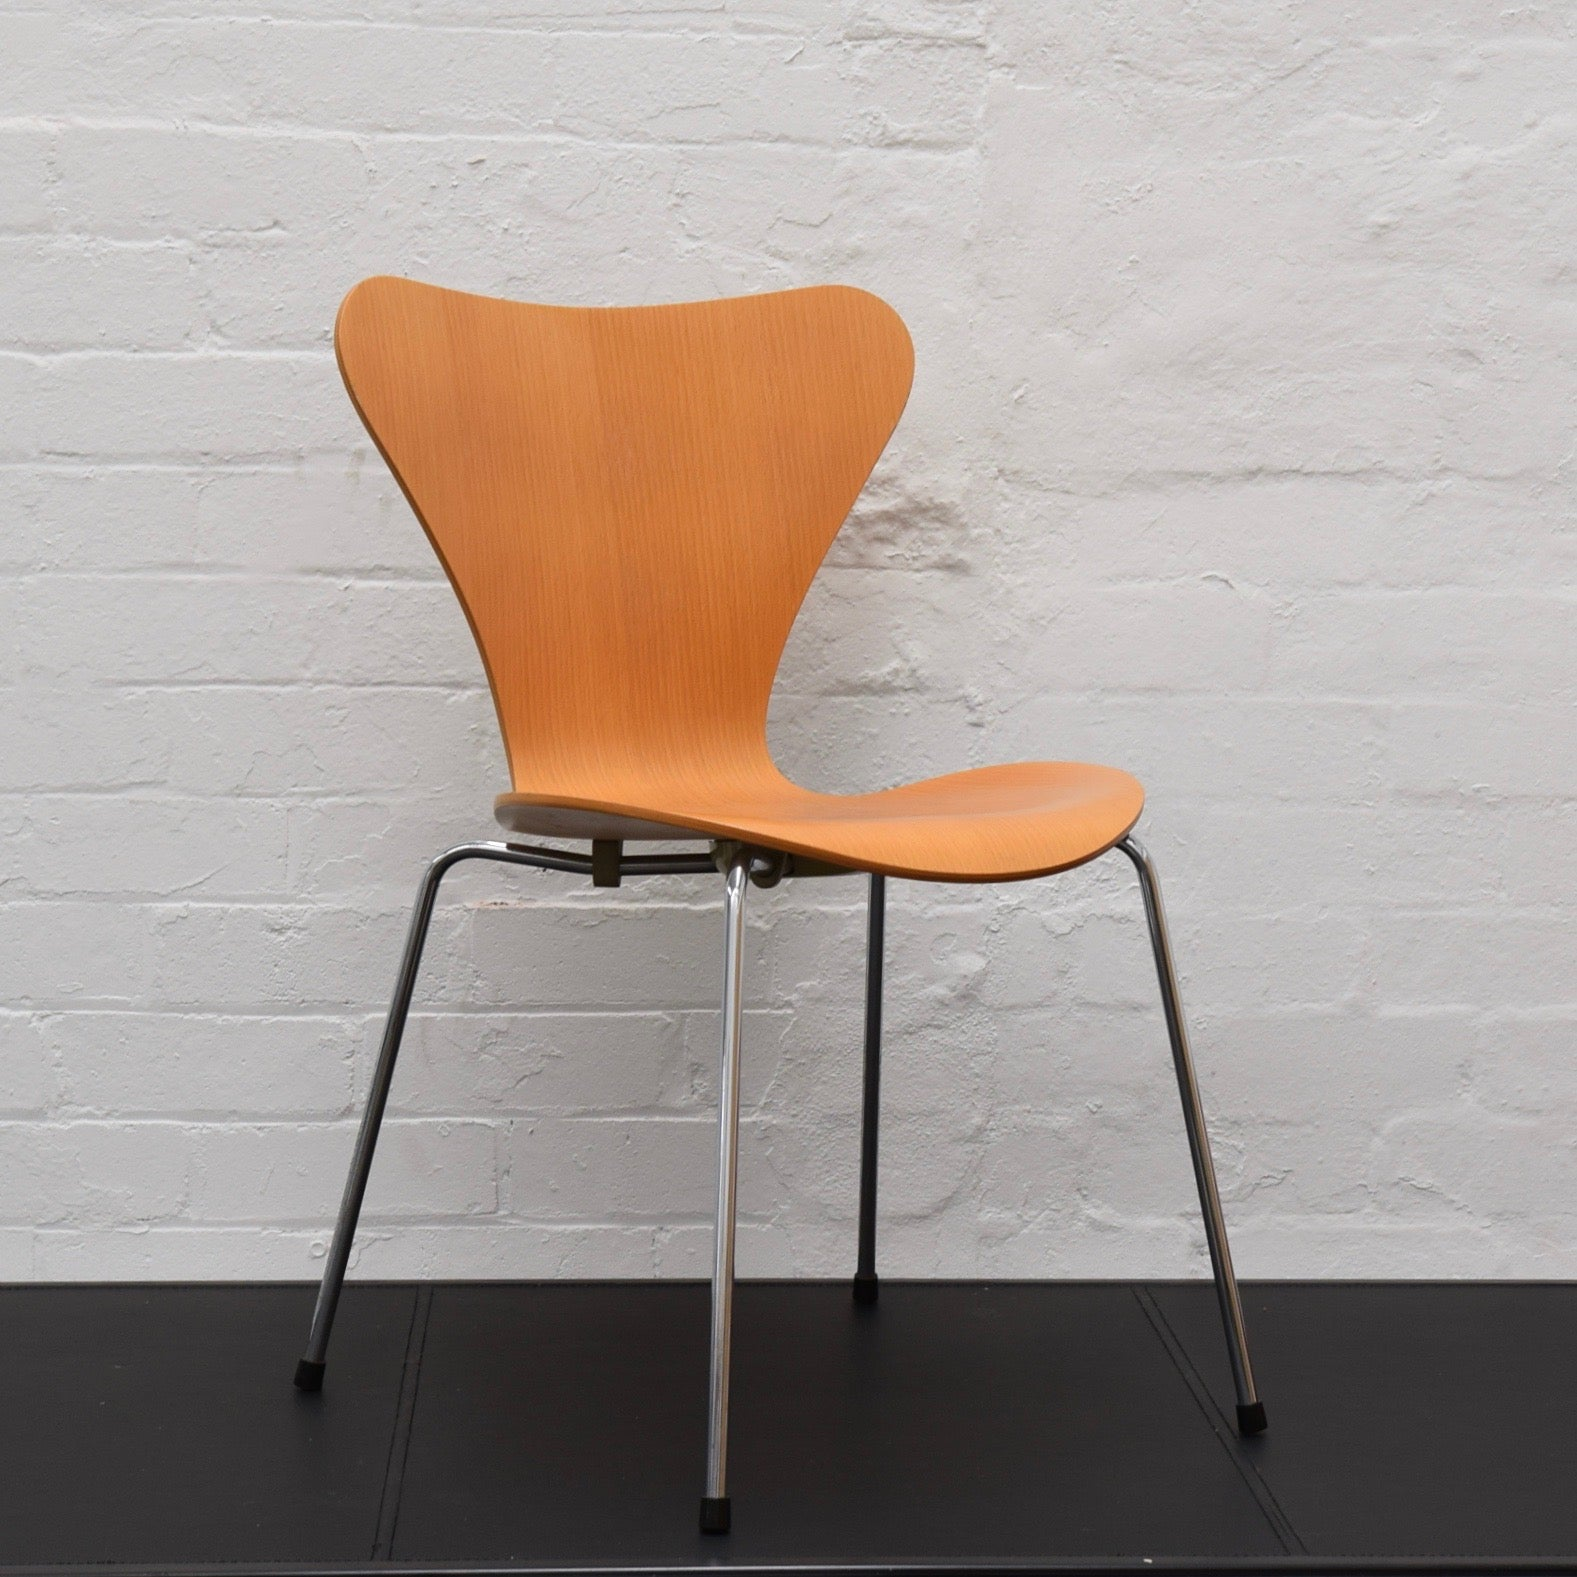 Series 7 Chair By Arne Jacobsen For Fritz Hansen (2 Available)